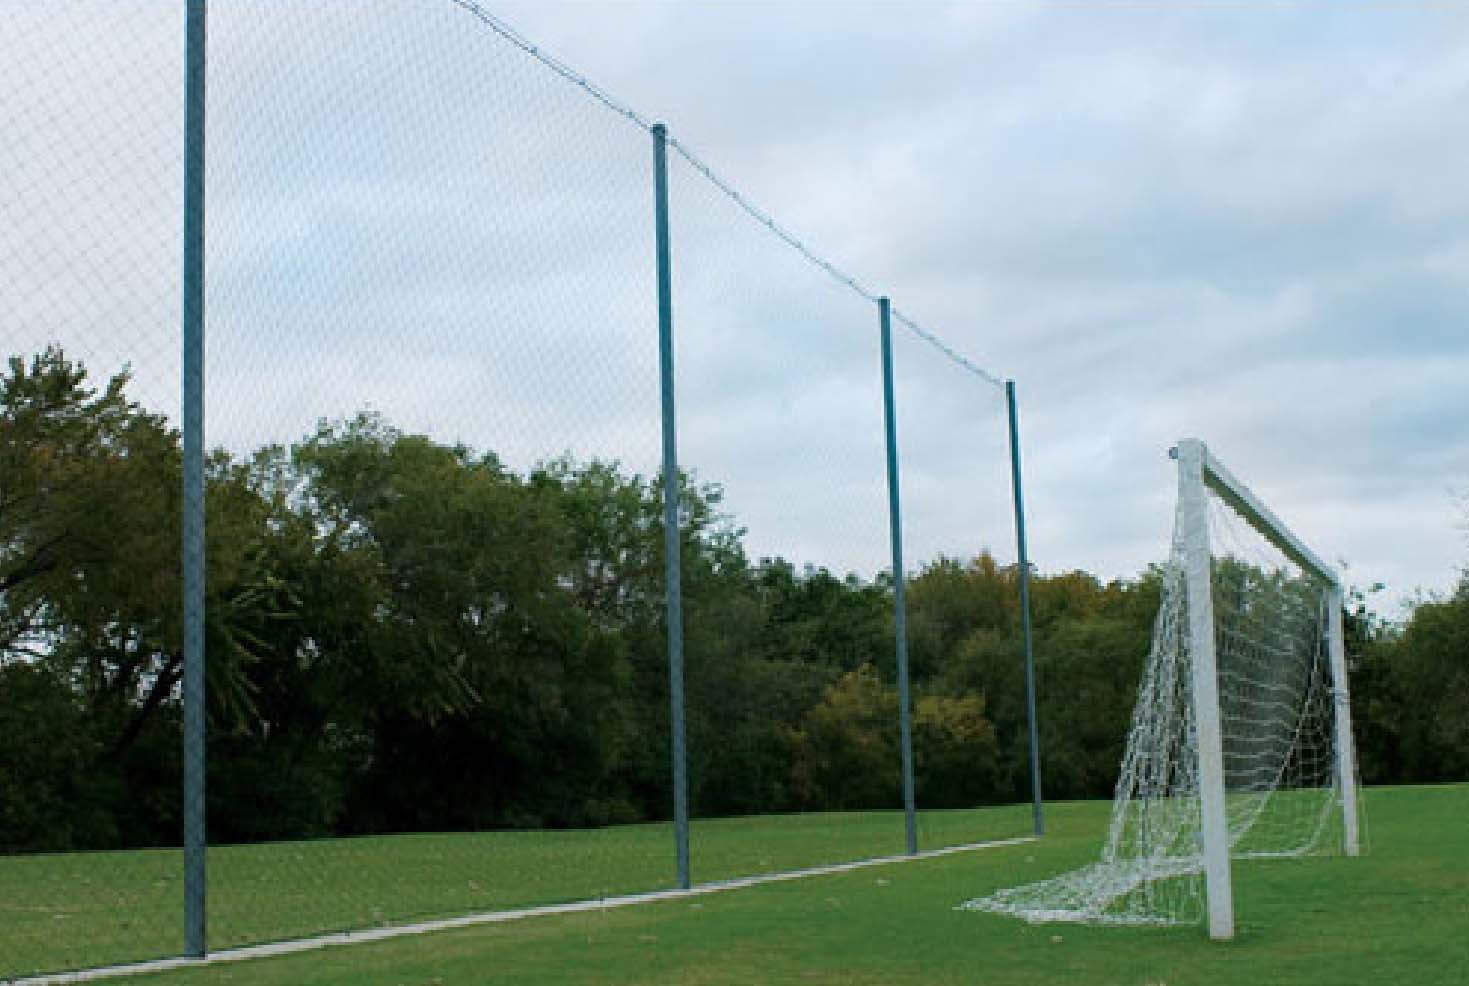 Soccer Backstop Netting System Top Pick